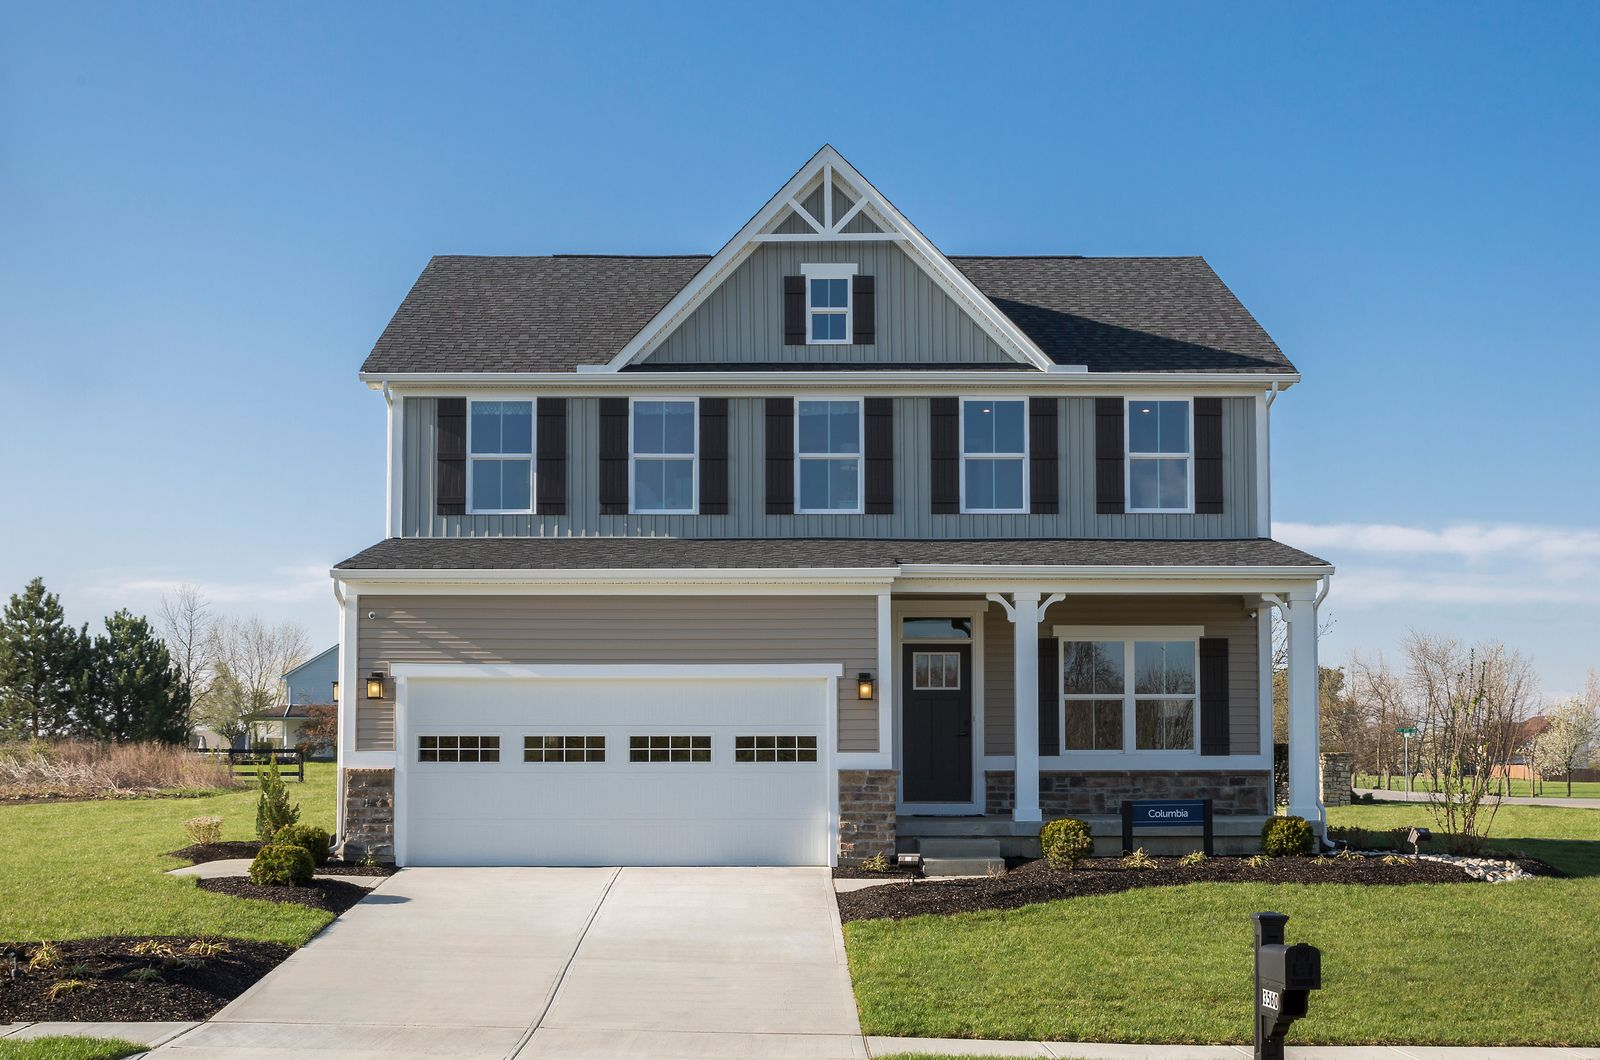 LAST CHANCE to own a new home with a basement, and the upgrades you expect!